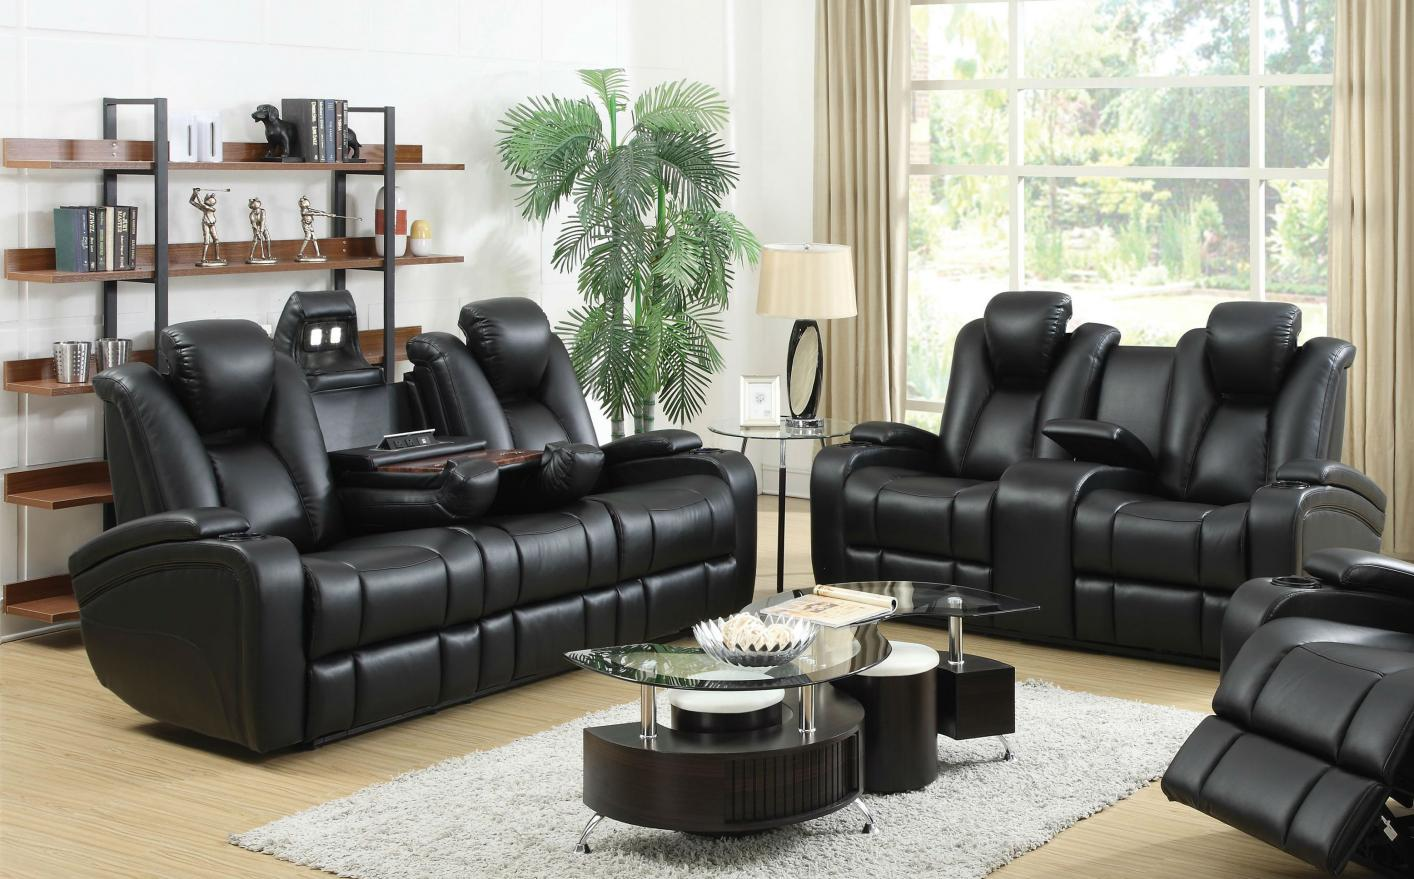 Coaster 601741p 601742p black leather power reclining sofa Reclining leather sofa and loveseat